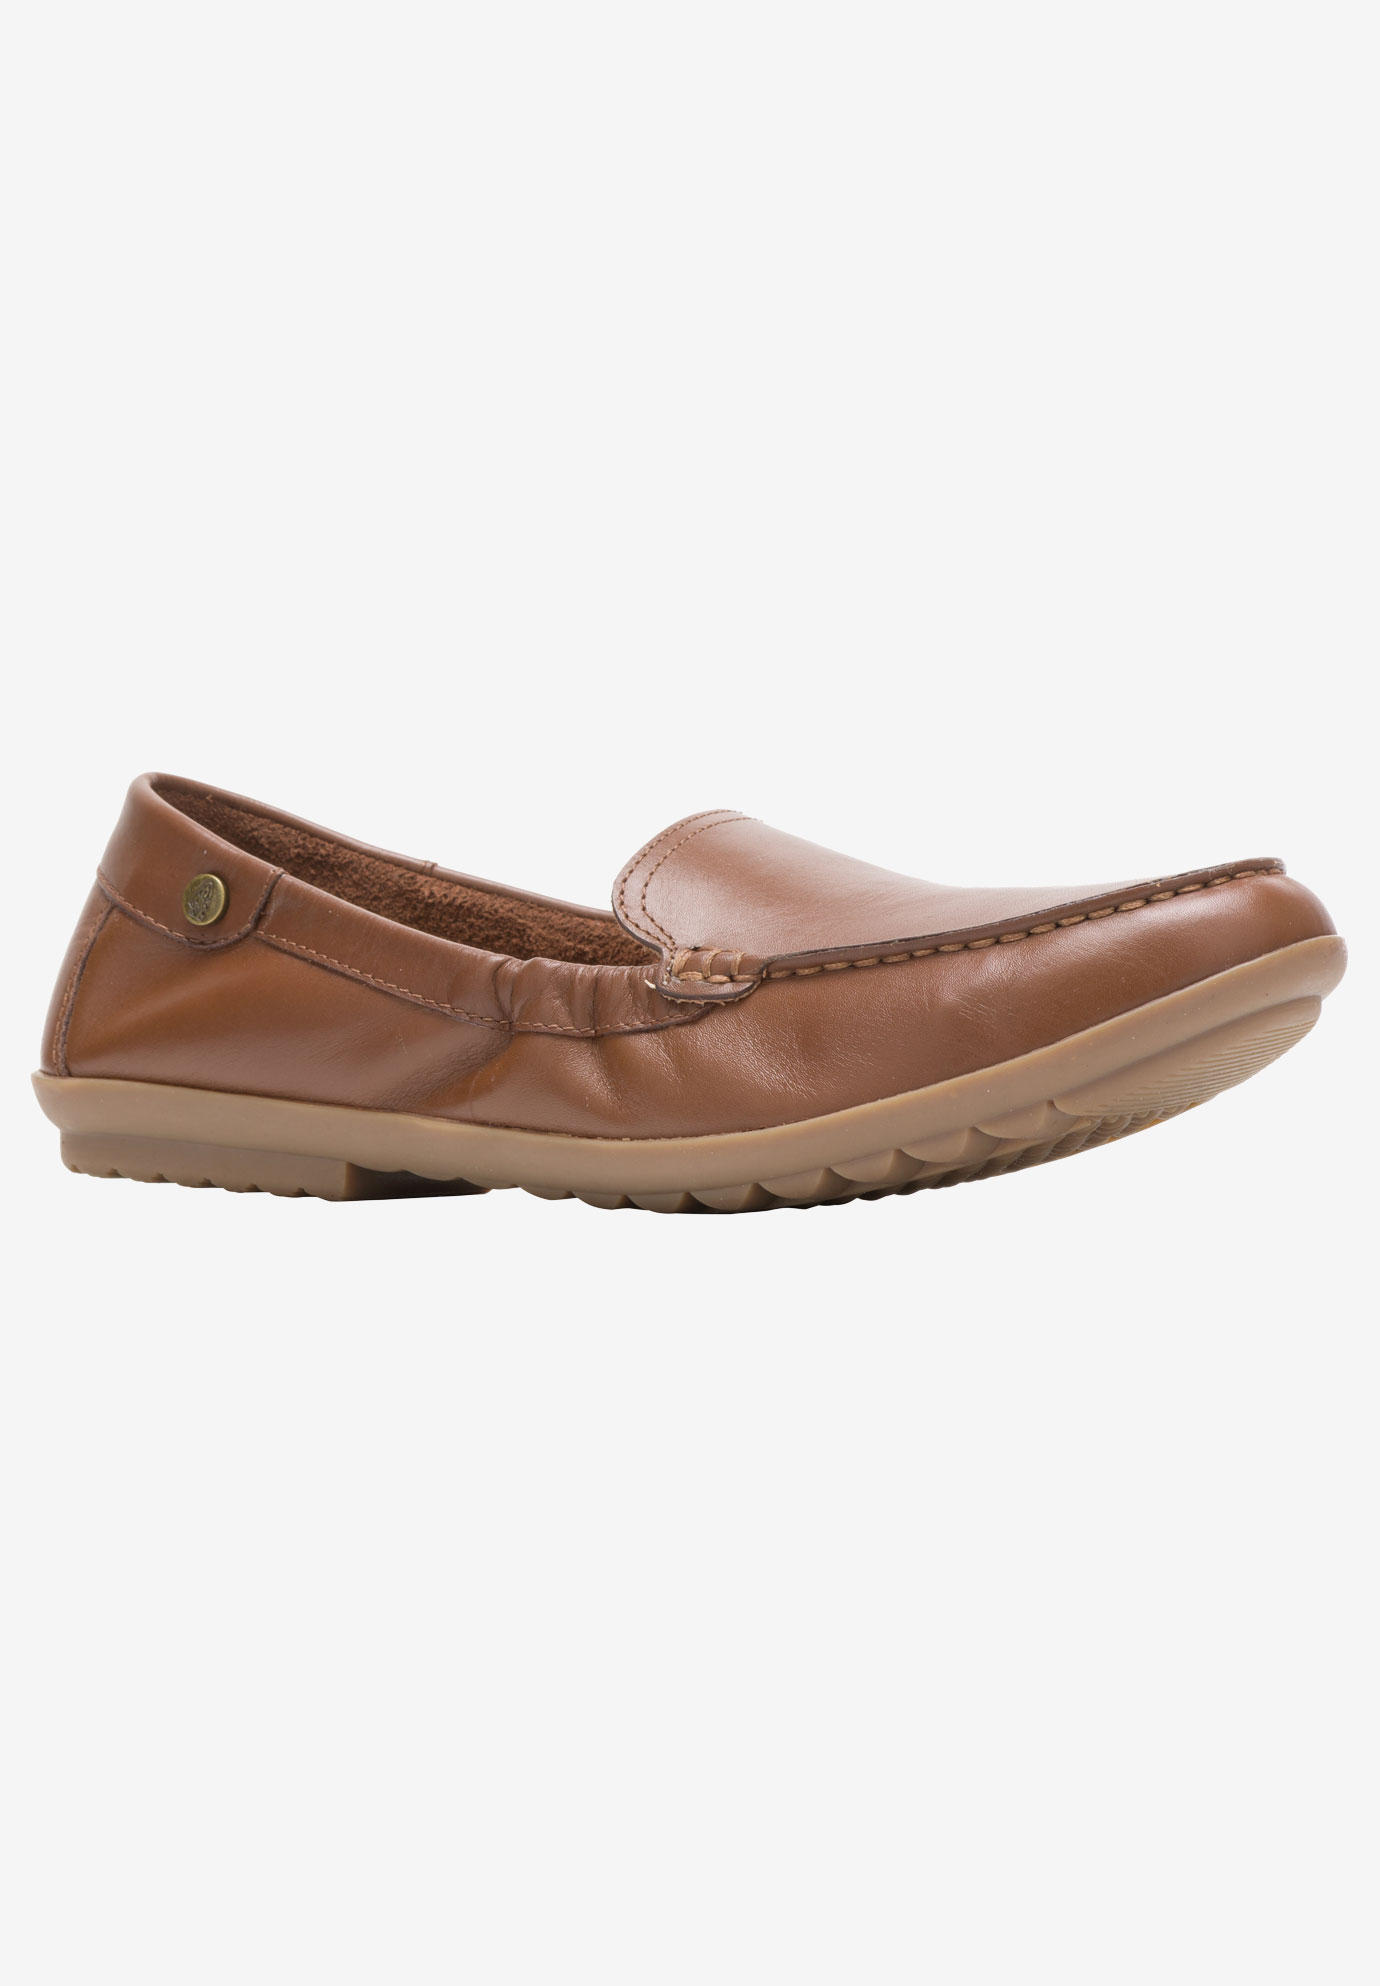 Aidi Moccasin by Hush Puppies, DACHSHUND LEATHER